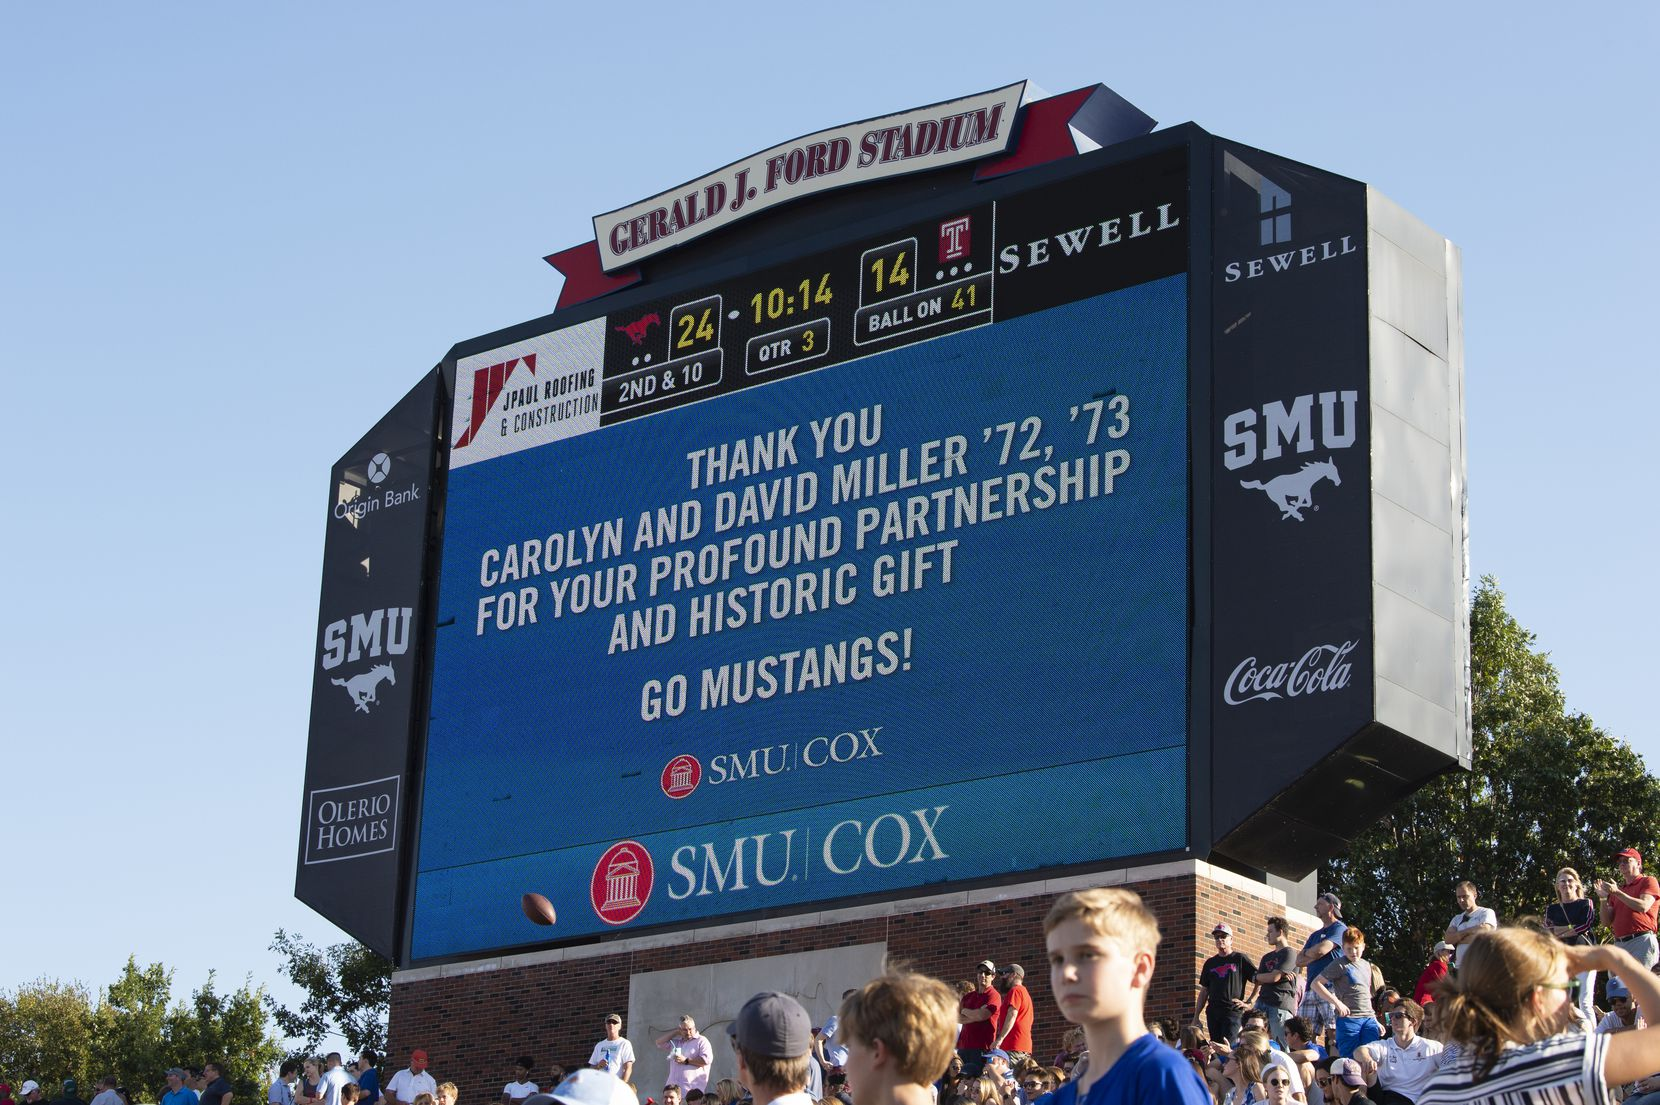 SMU posted a thank you to Carolyn and David B. Miller at its football game at Gerald J. Ford Stadium on Oct. 19.